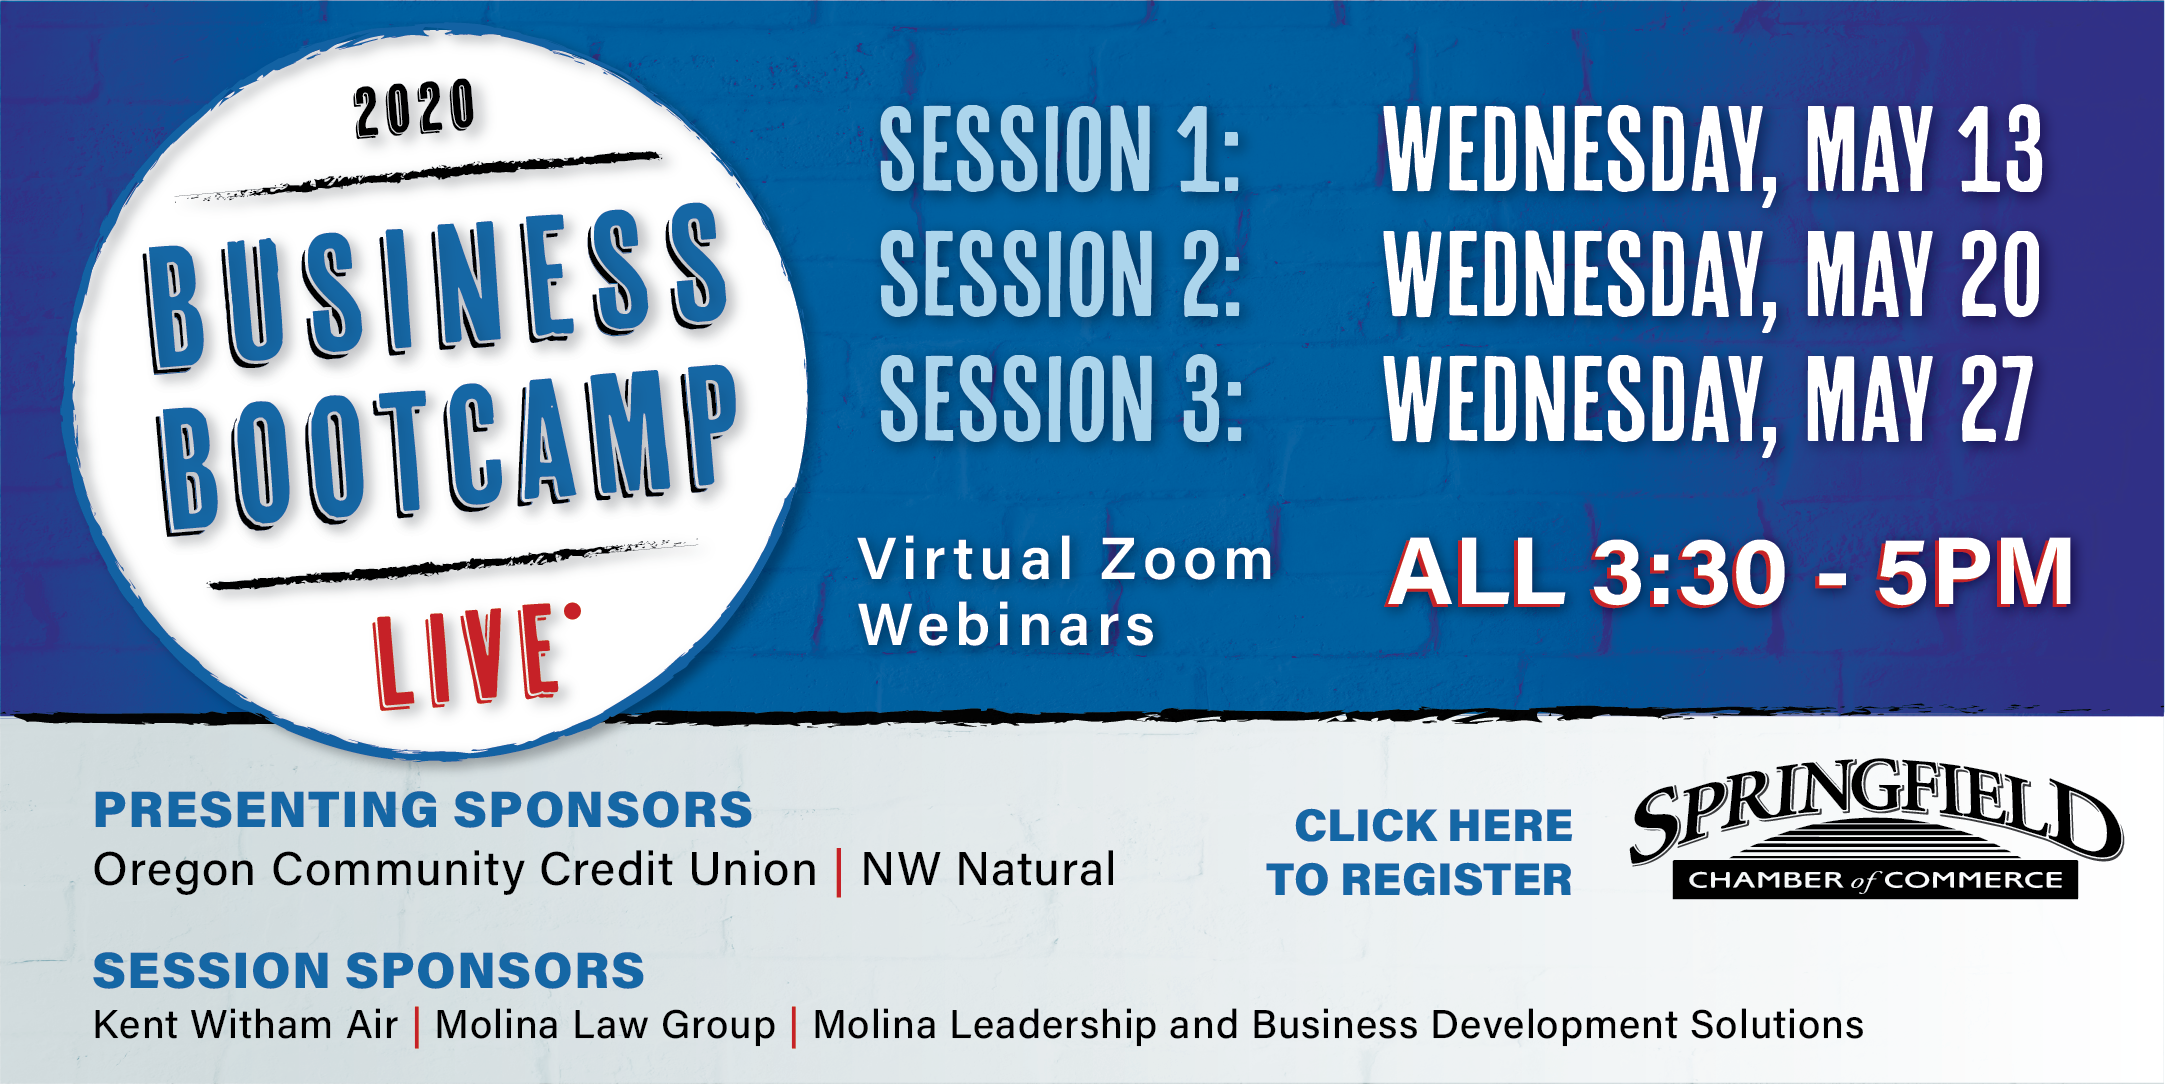 Business Boot Camp LIVE 2020